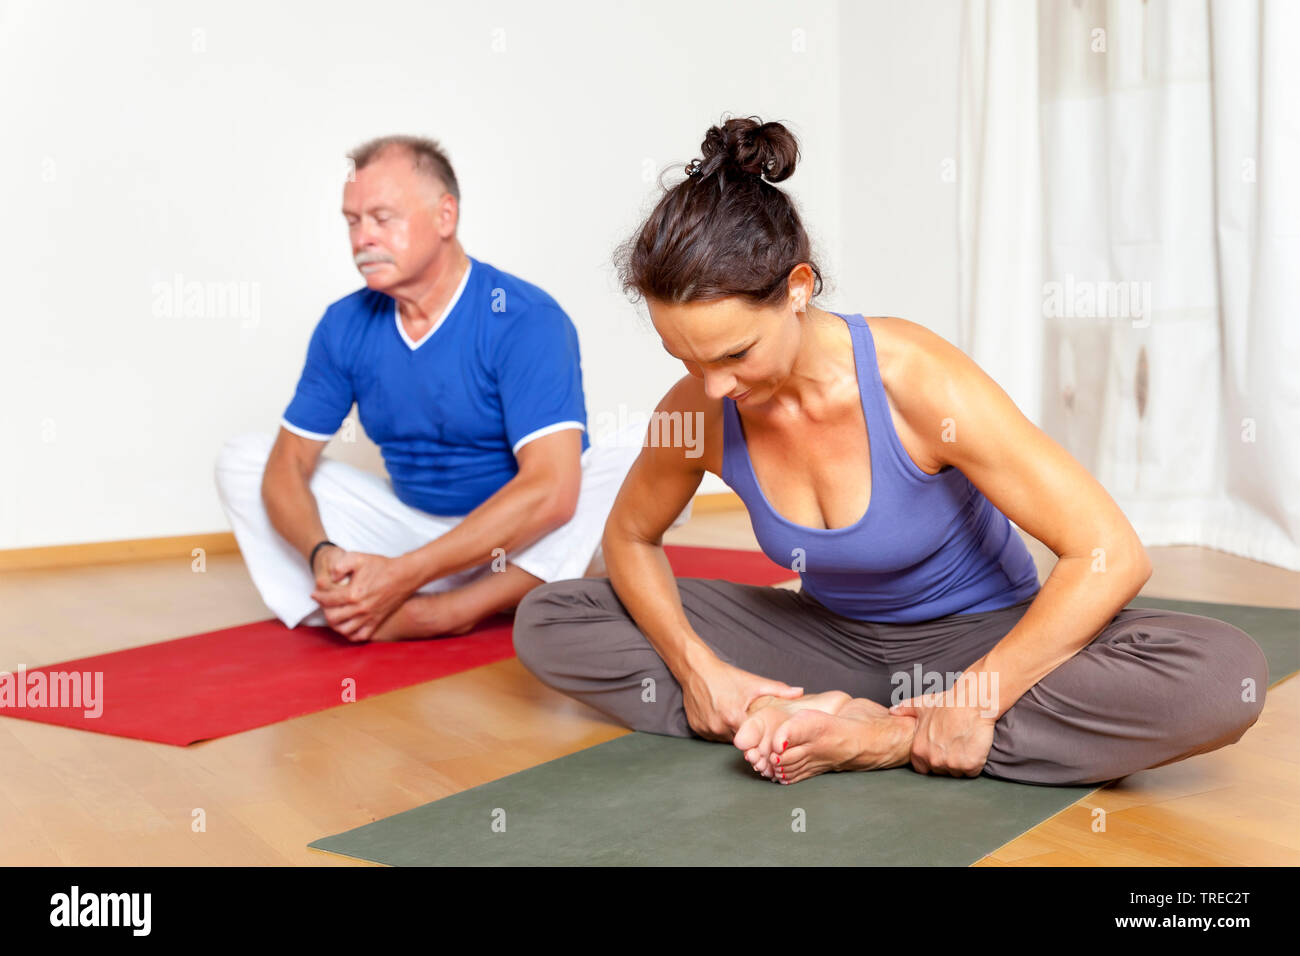 Frau und Mann machen Yoga-Uebungen, Europa | woman and man doing yoga, Europe | BLWS522574.jpg [ (c) blickwinkel/McPHOTO/M. Gann Tel. +49 (0)2302-2793 Stock Photo